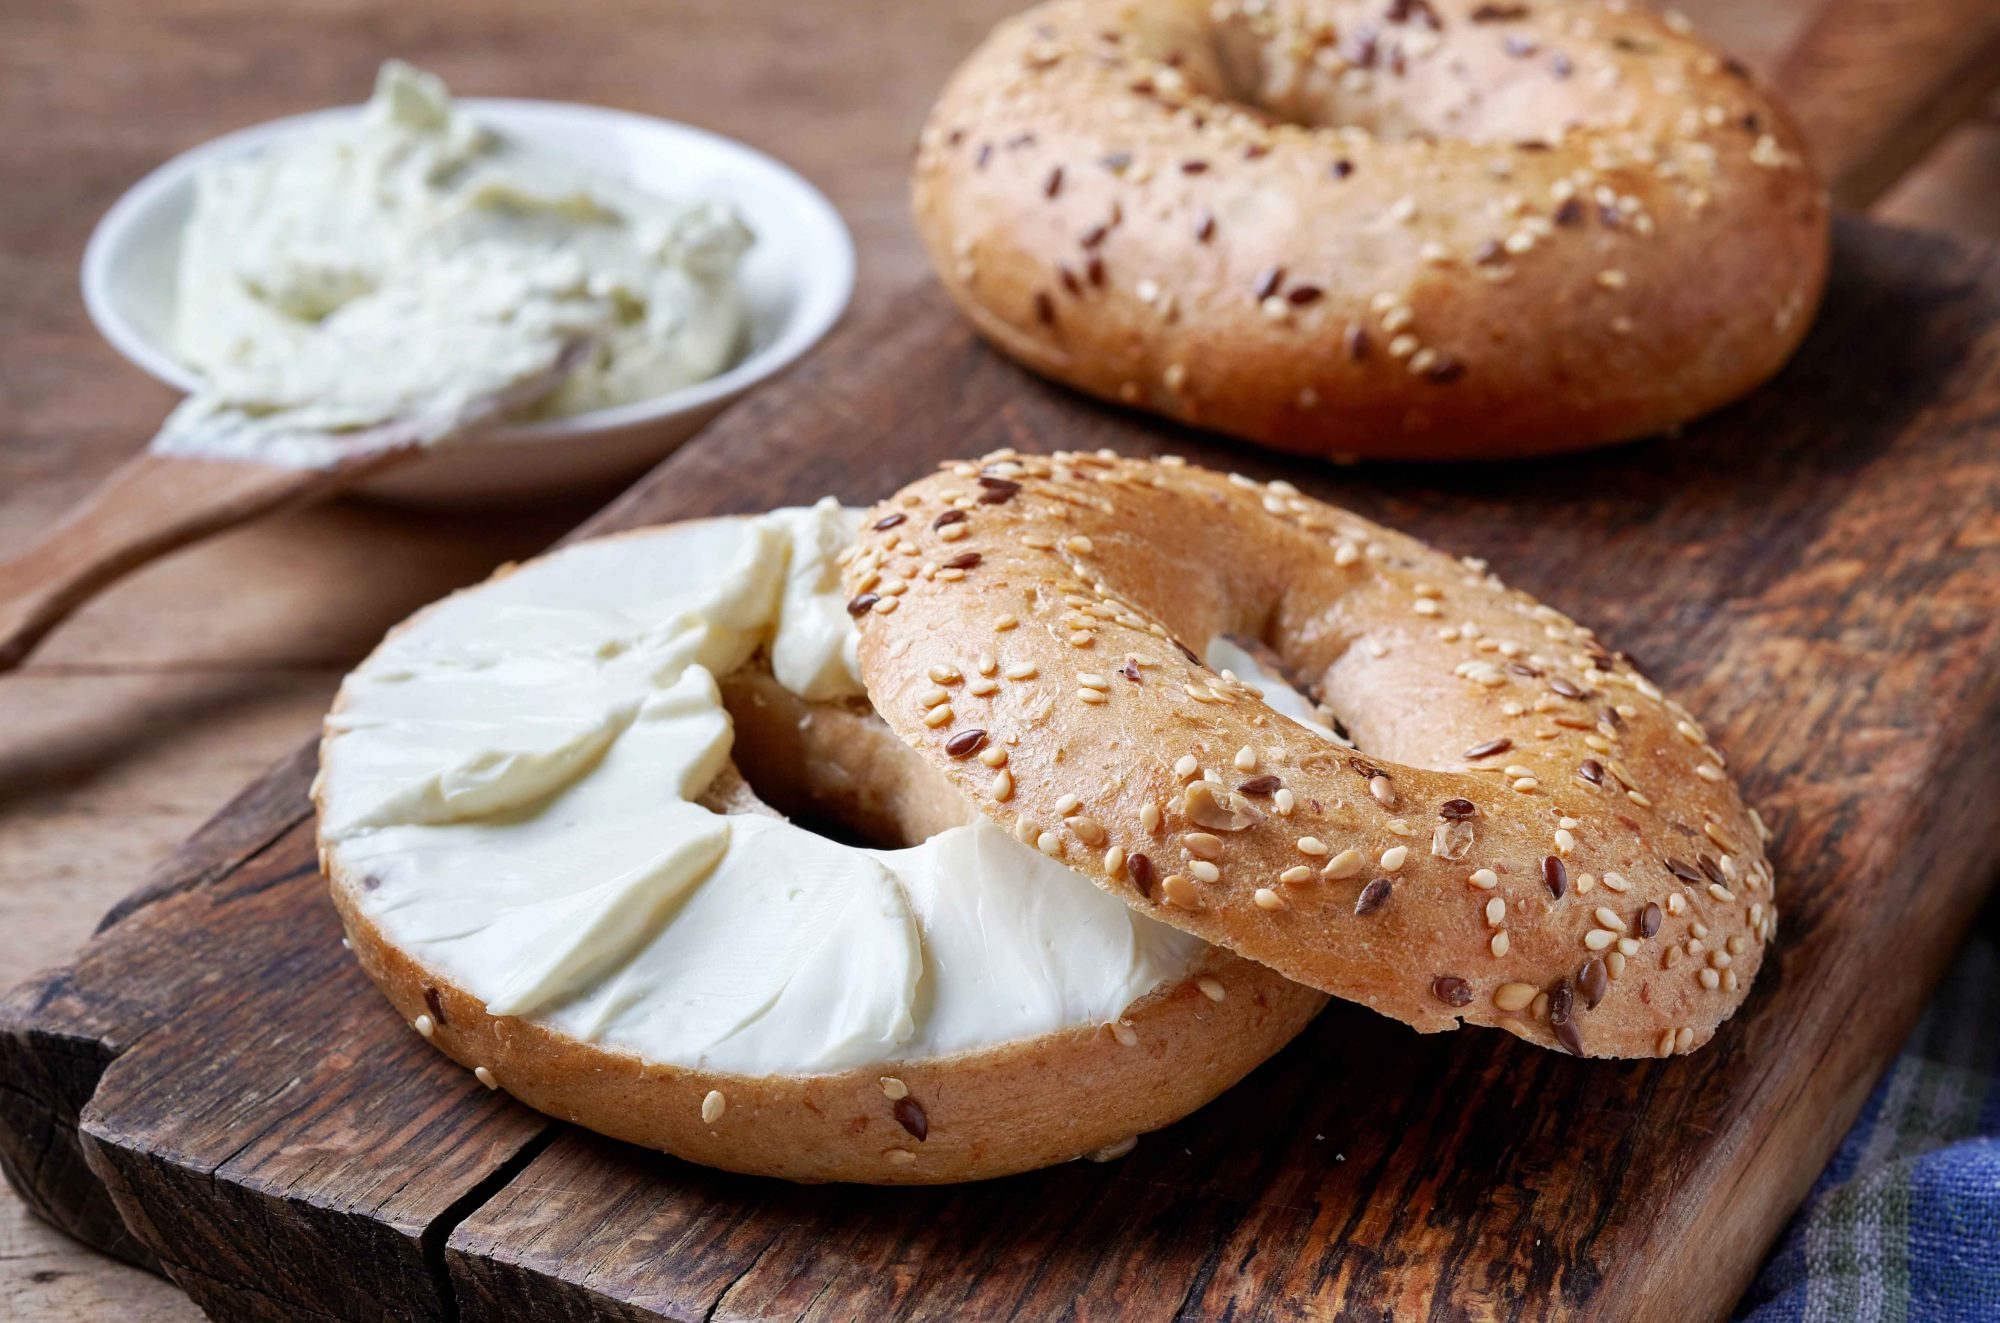 EC: 10 Store-Bought Bagels Ranked by a New York Jew